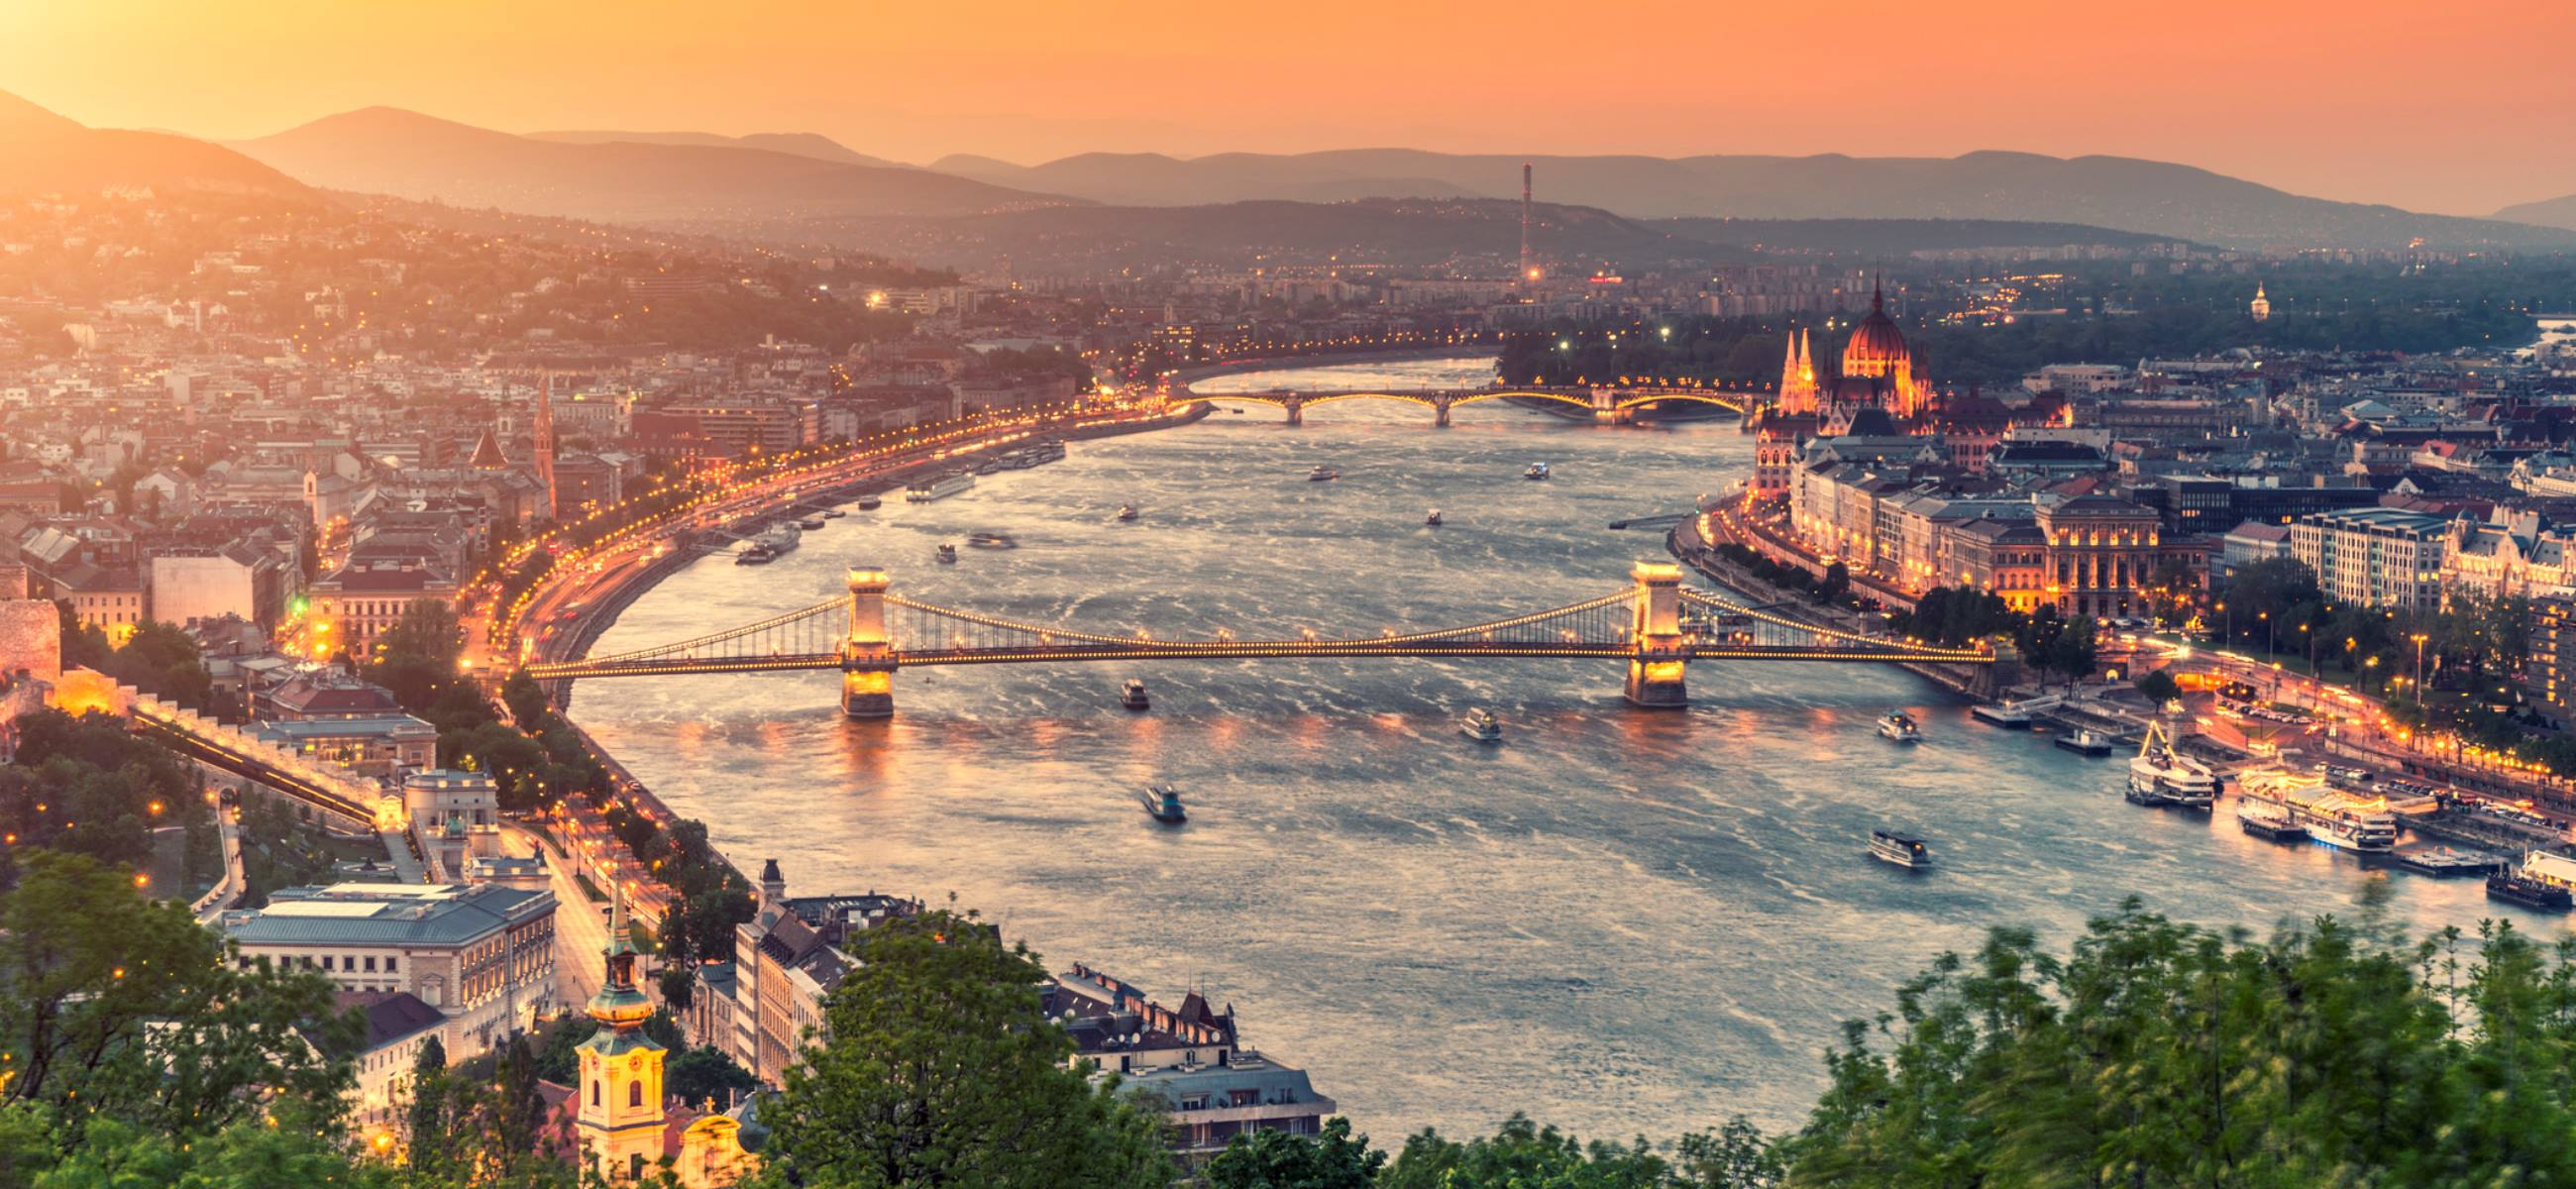 5 amazing self-drive day trips from budapest